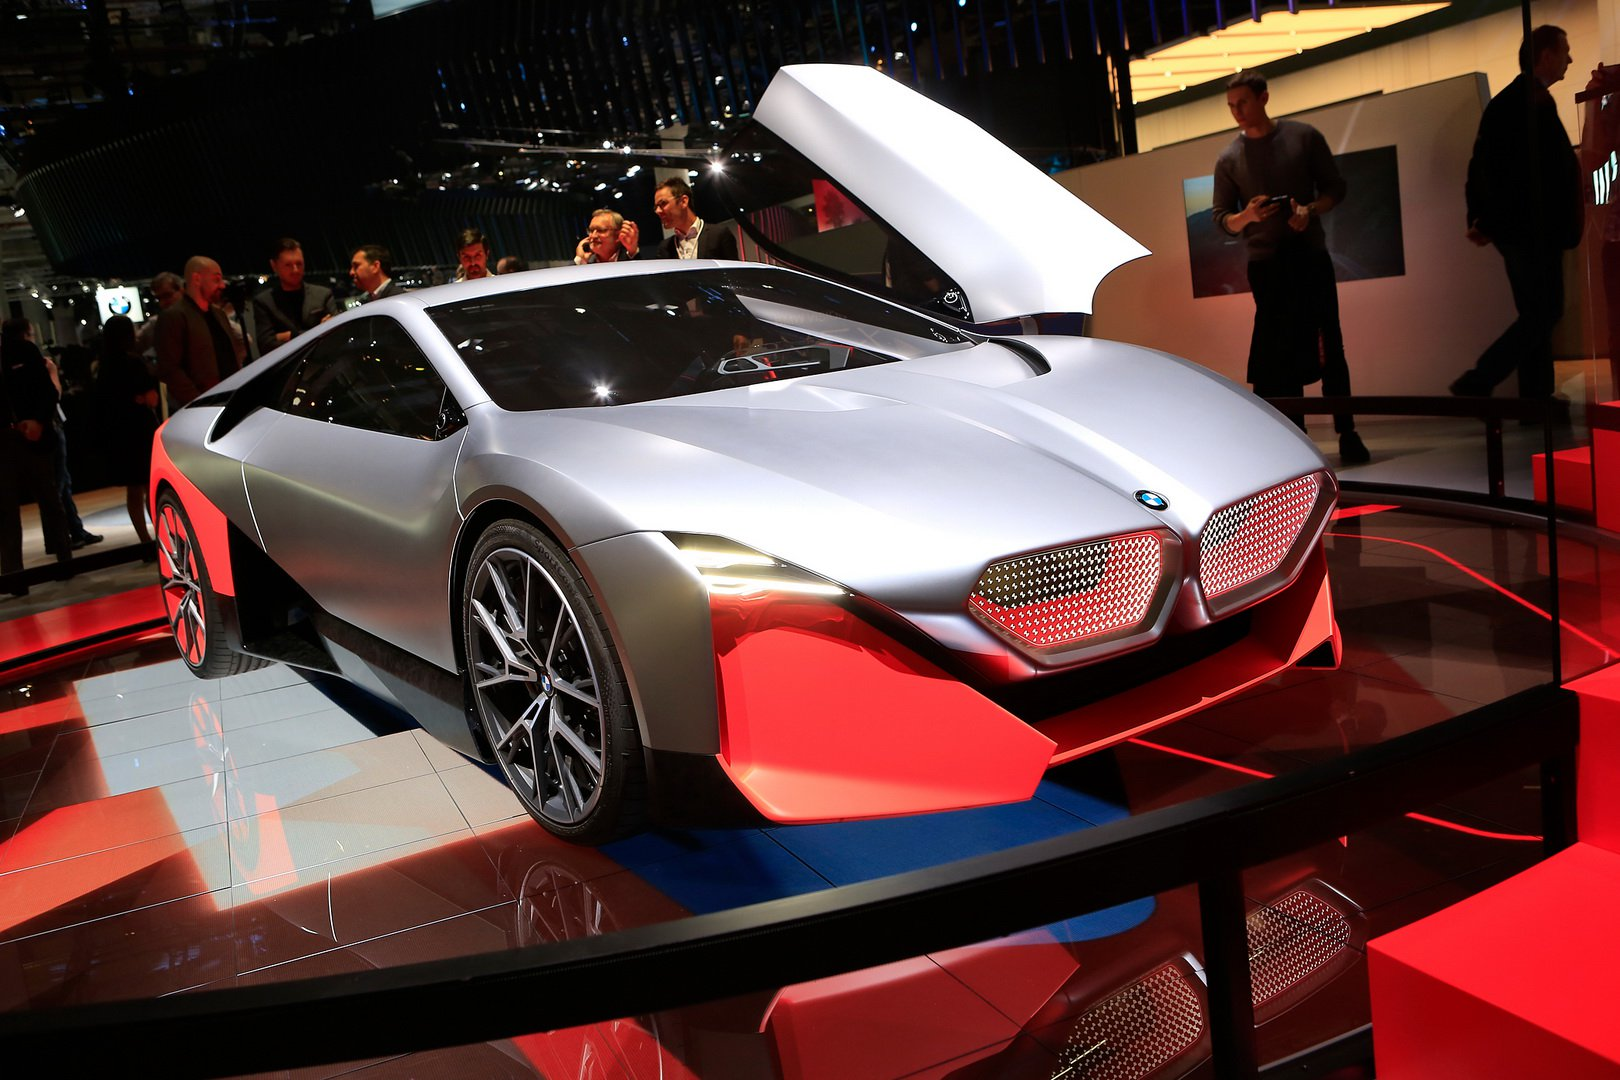 BMW has unveiled the spectacular BMW Vision M Next Concept at the Frankfurt Motor Show 2019. Let us see what the future of the Bavarian automotive brand looks like.